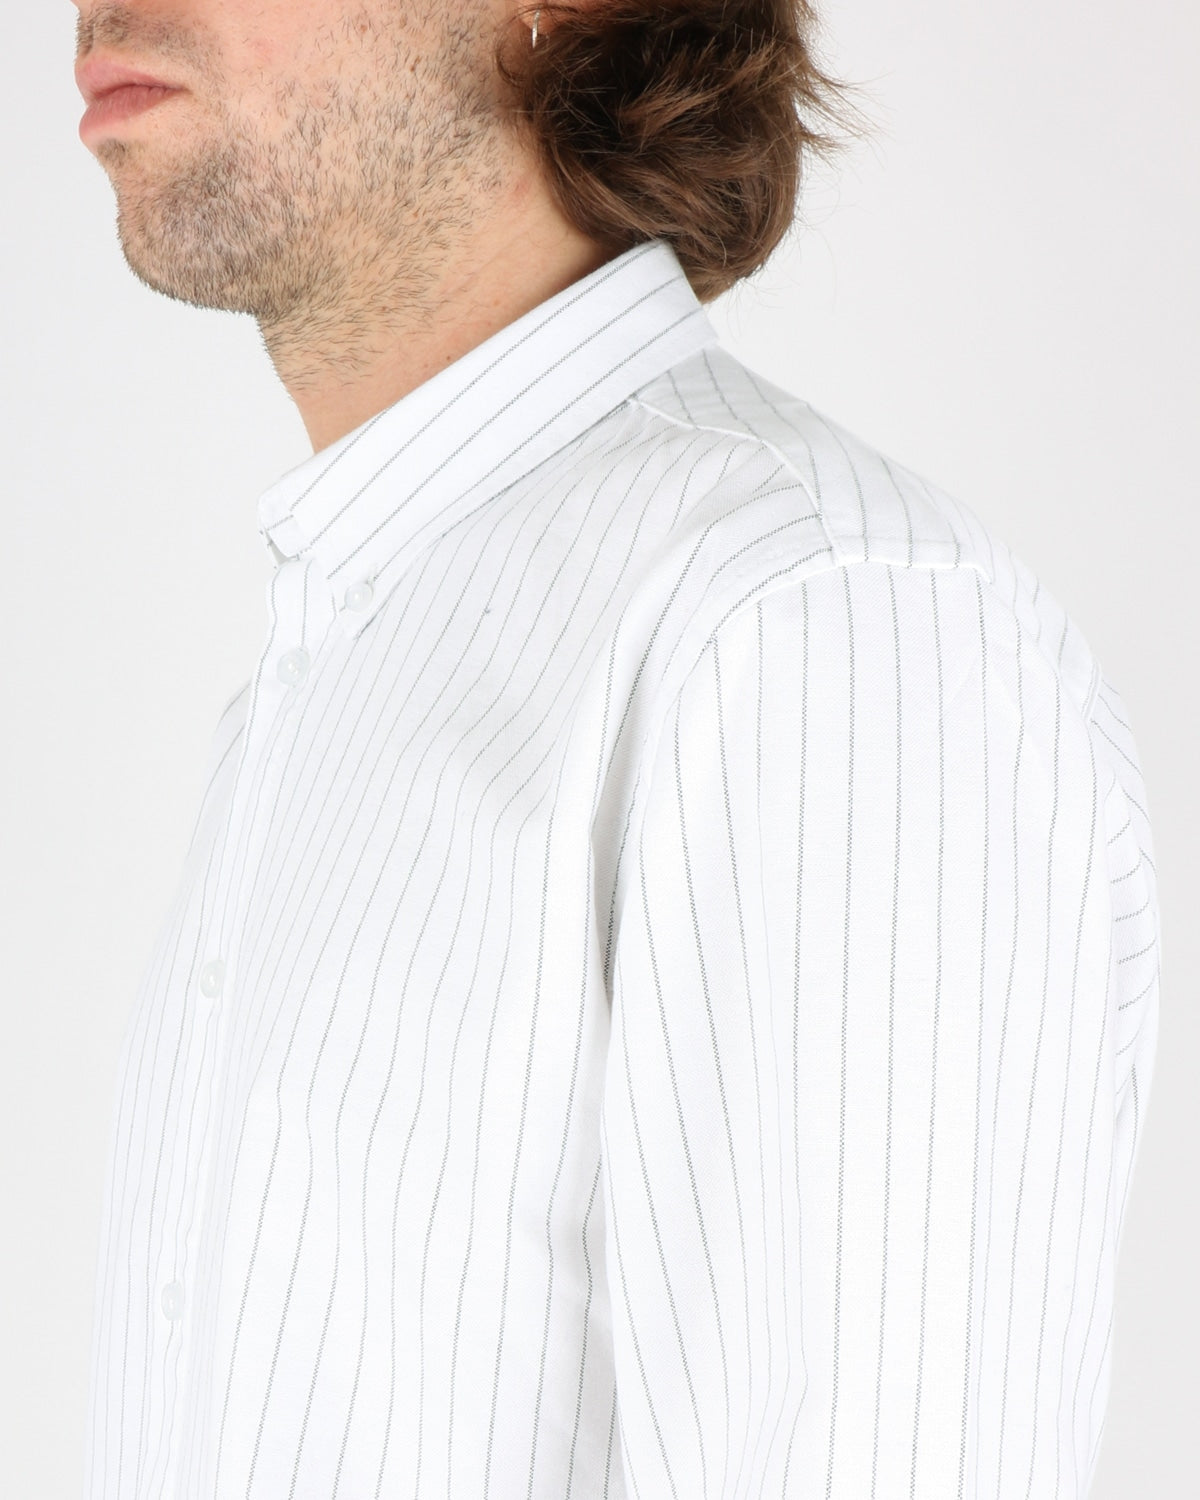 woodbird_trime stripe shirt_white grey_3_4